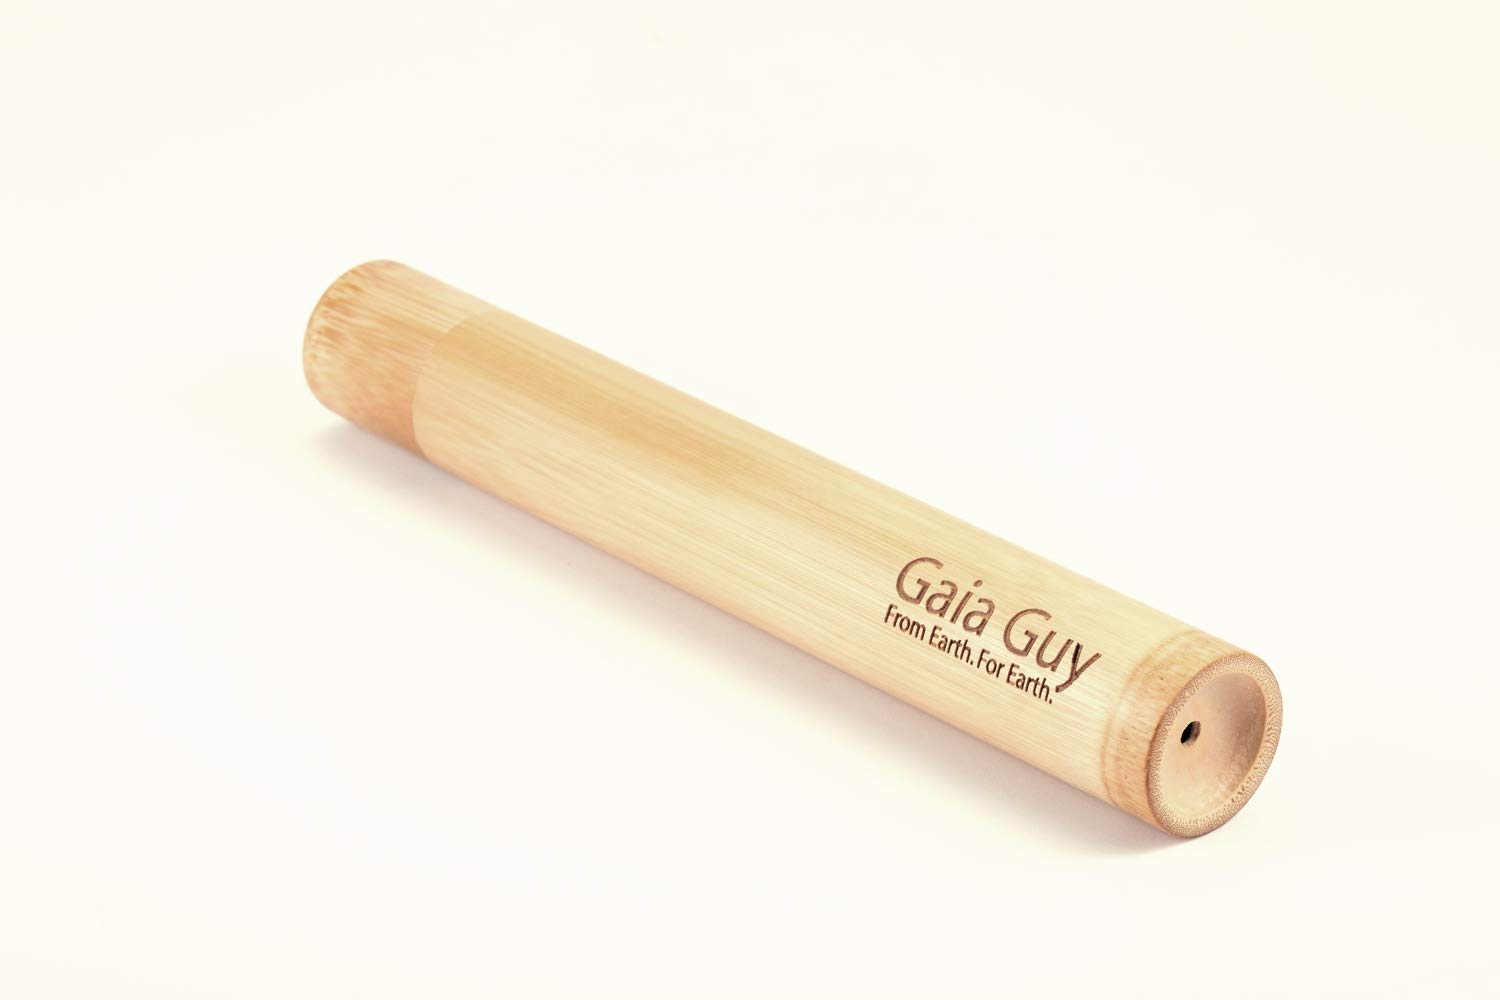 Bamboo Toothbrush Travel Case - The Eco-Friendly Holder for Your toothbrushes Gaia Guy